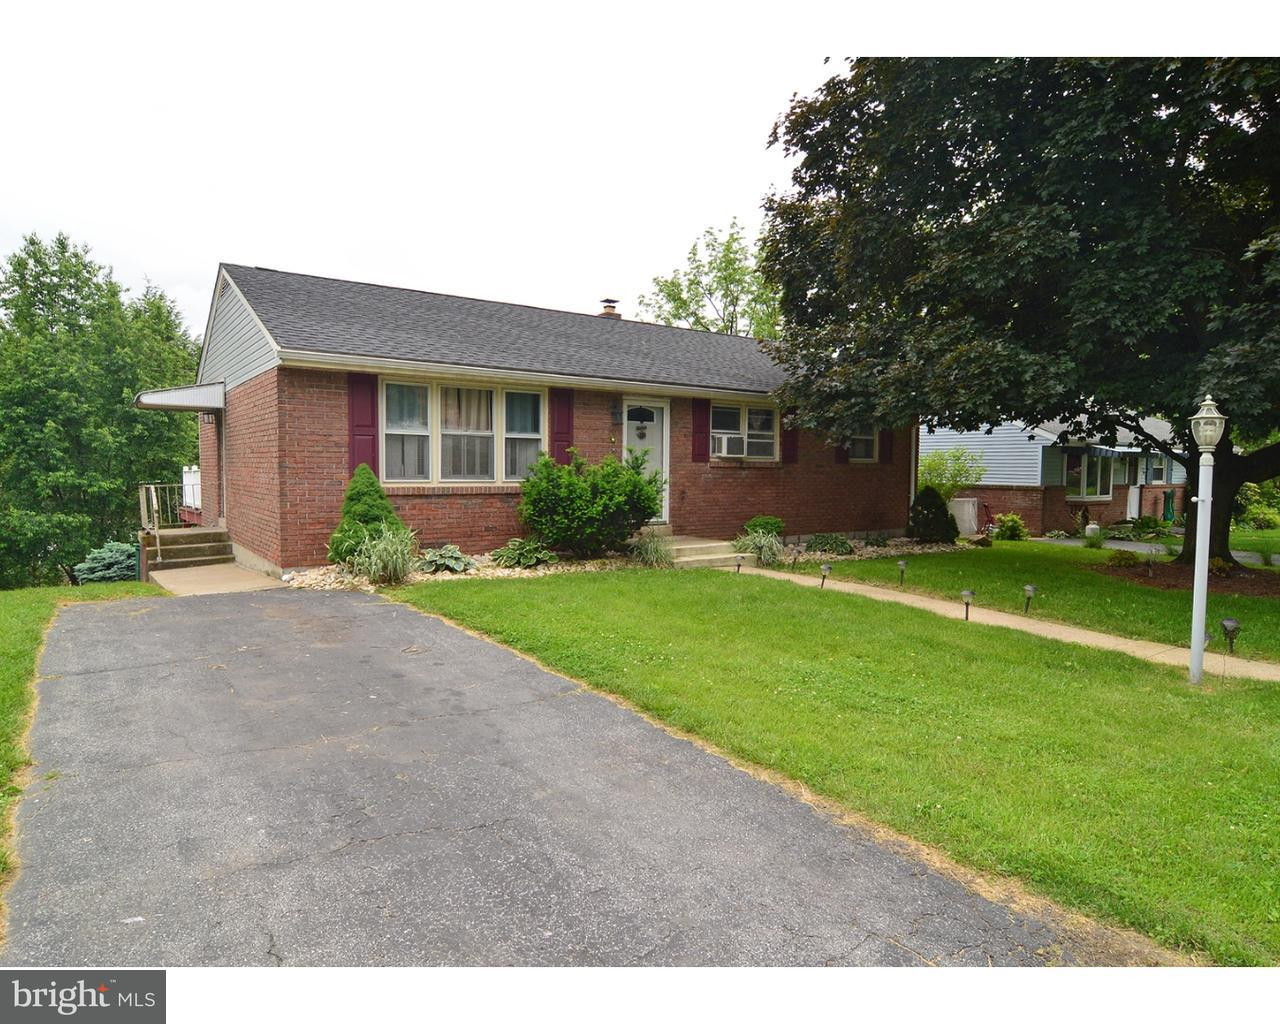 1362 WINGATE AVE, READING - Listed at $159,900, READING